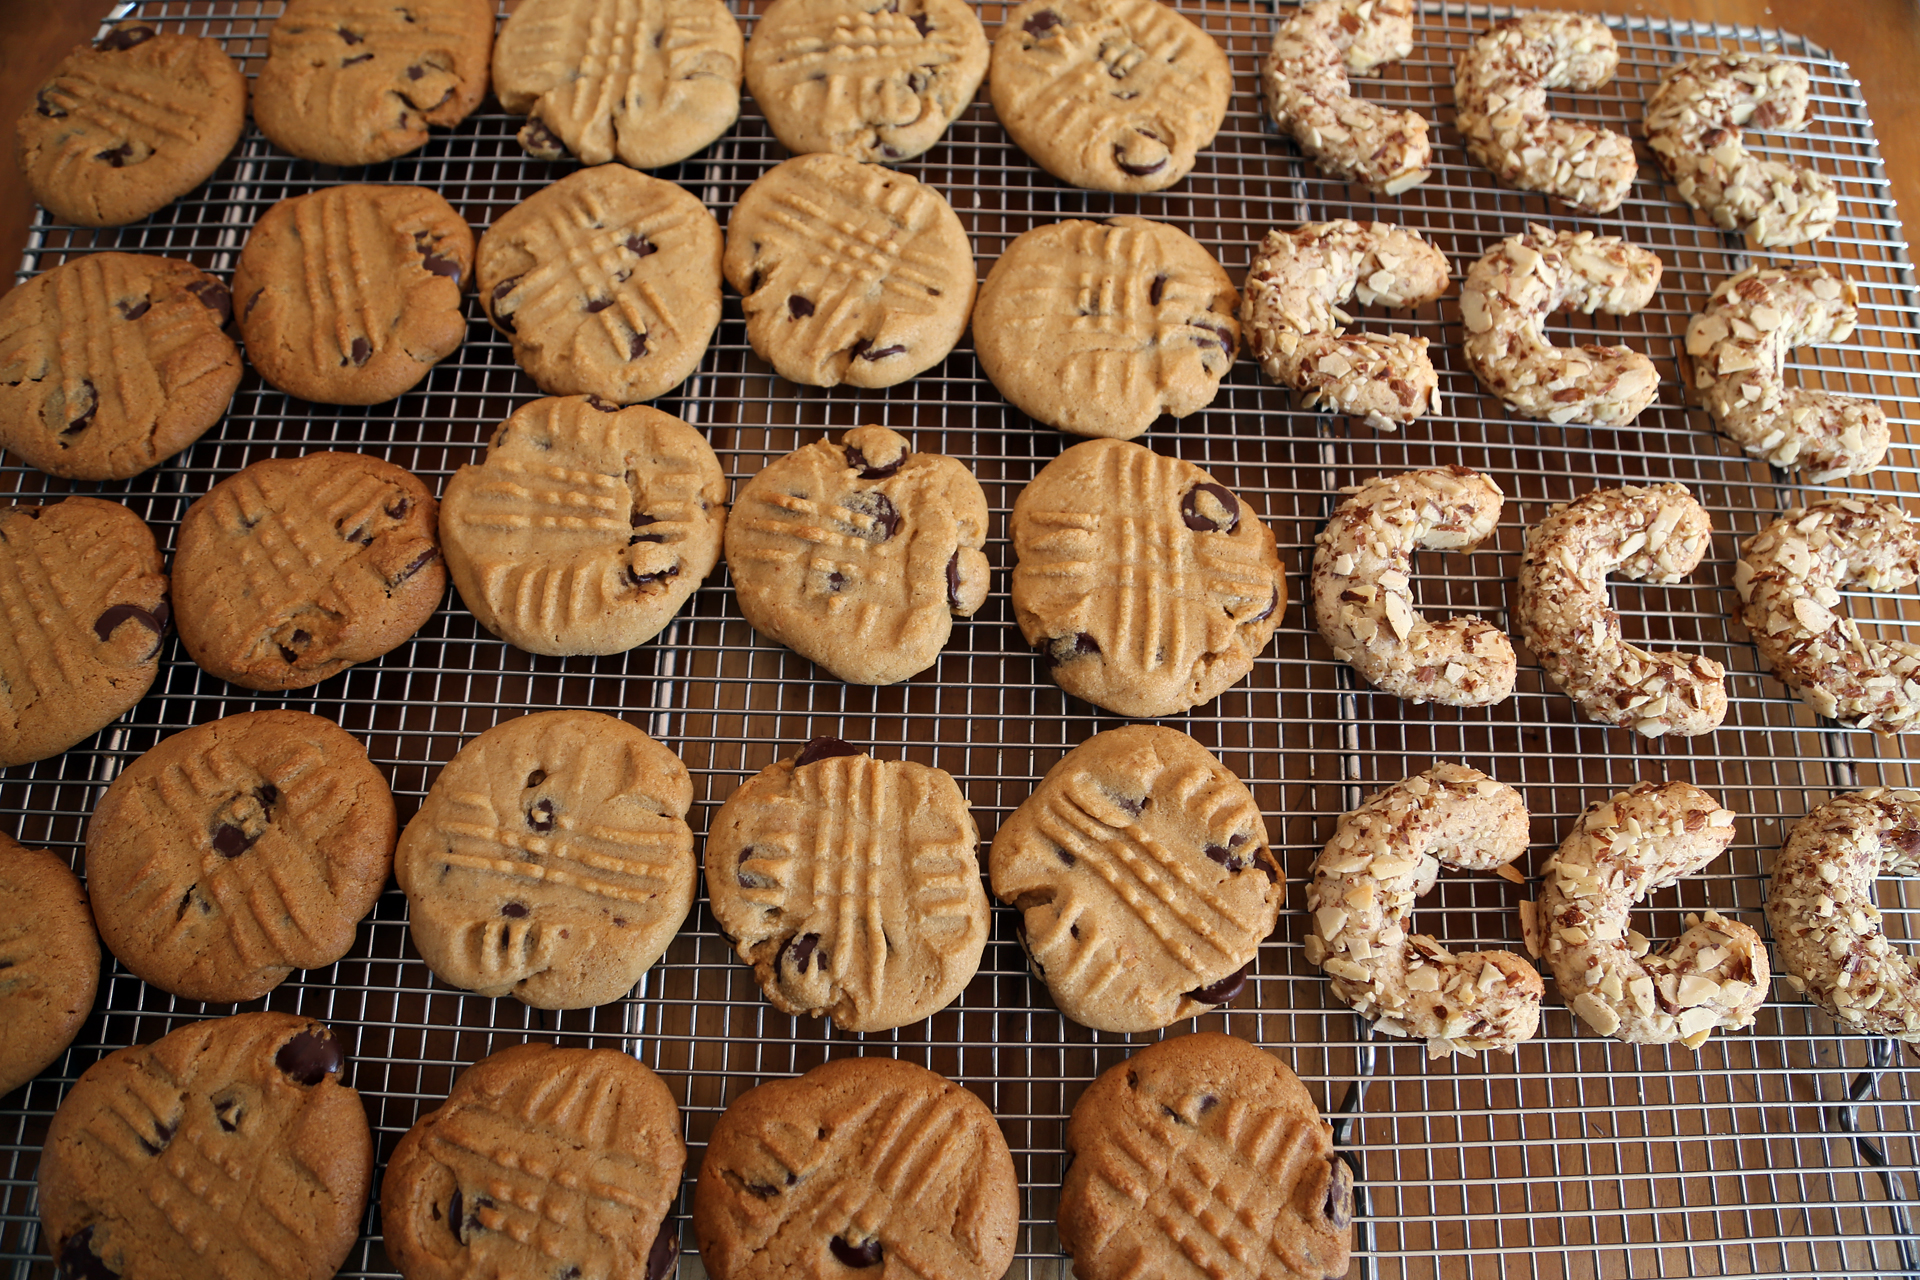 Let cool for 5 minutes on the baking sheet before transferring to a wire rack to cool completely.